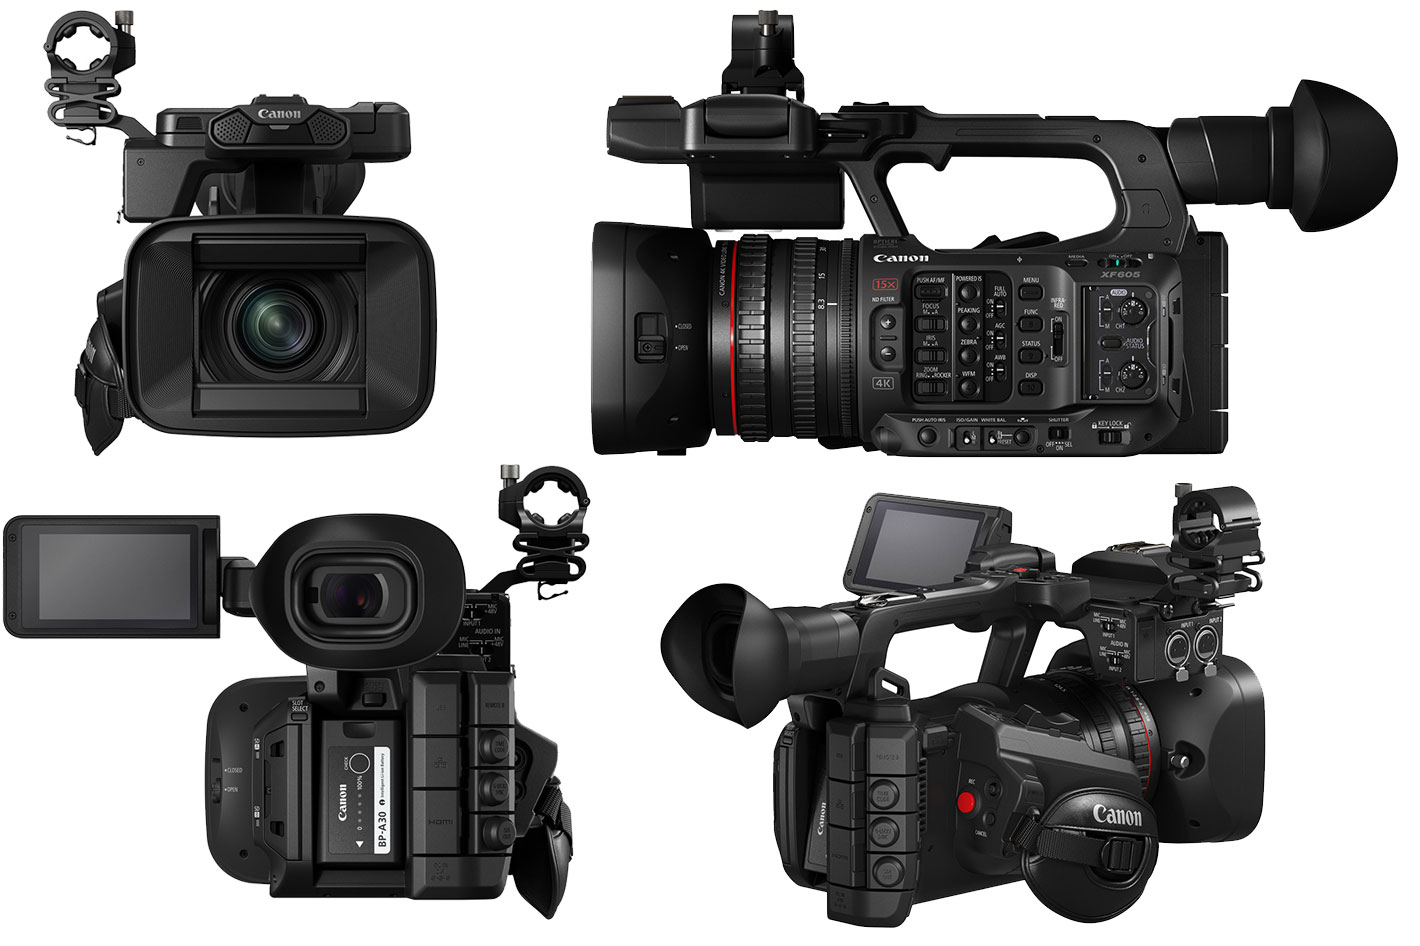 Canon's new XF605 4K camcorder and other imaging solutions